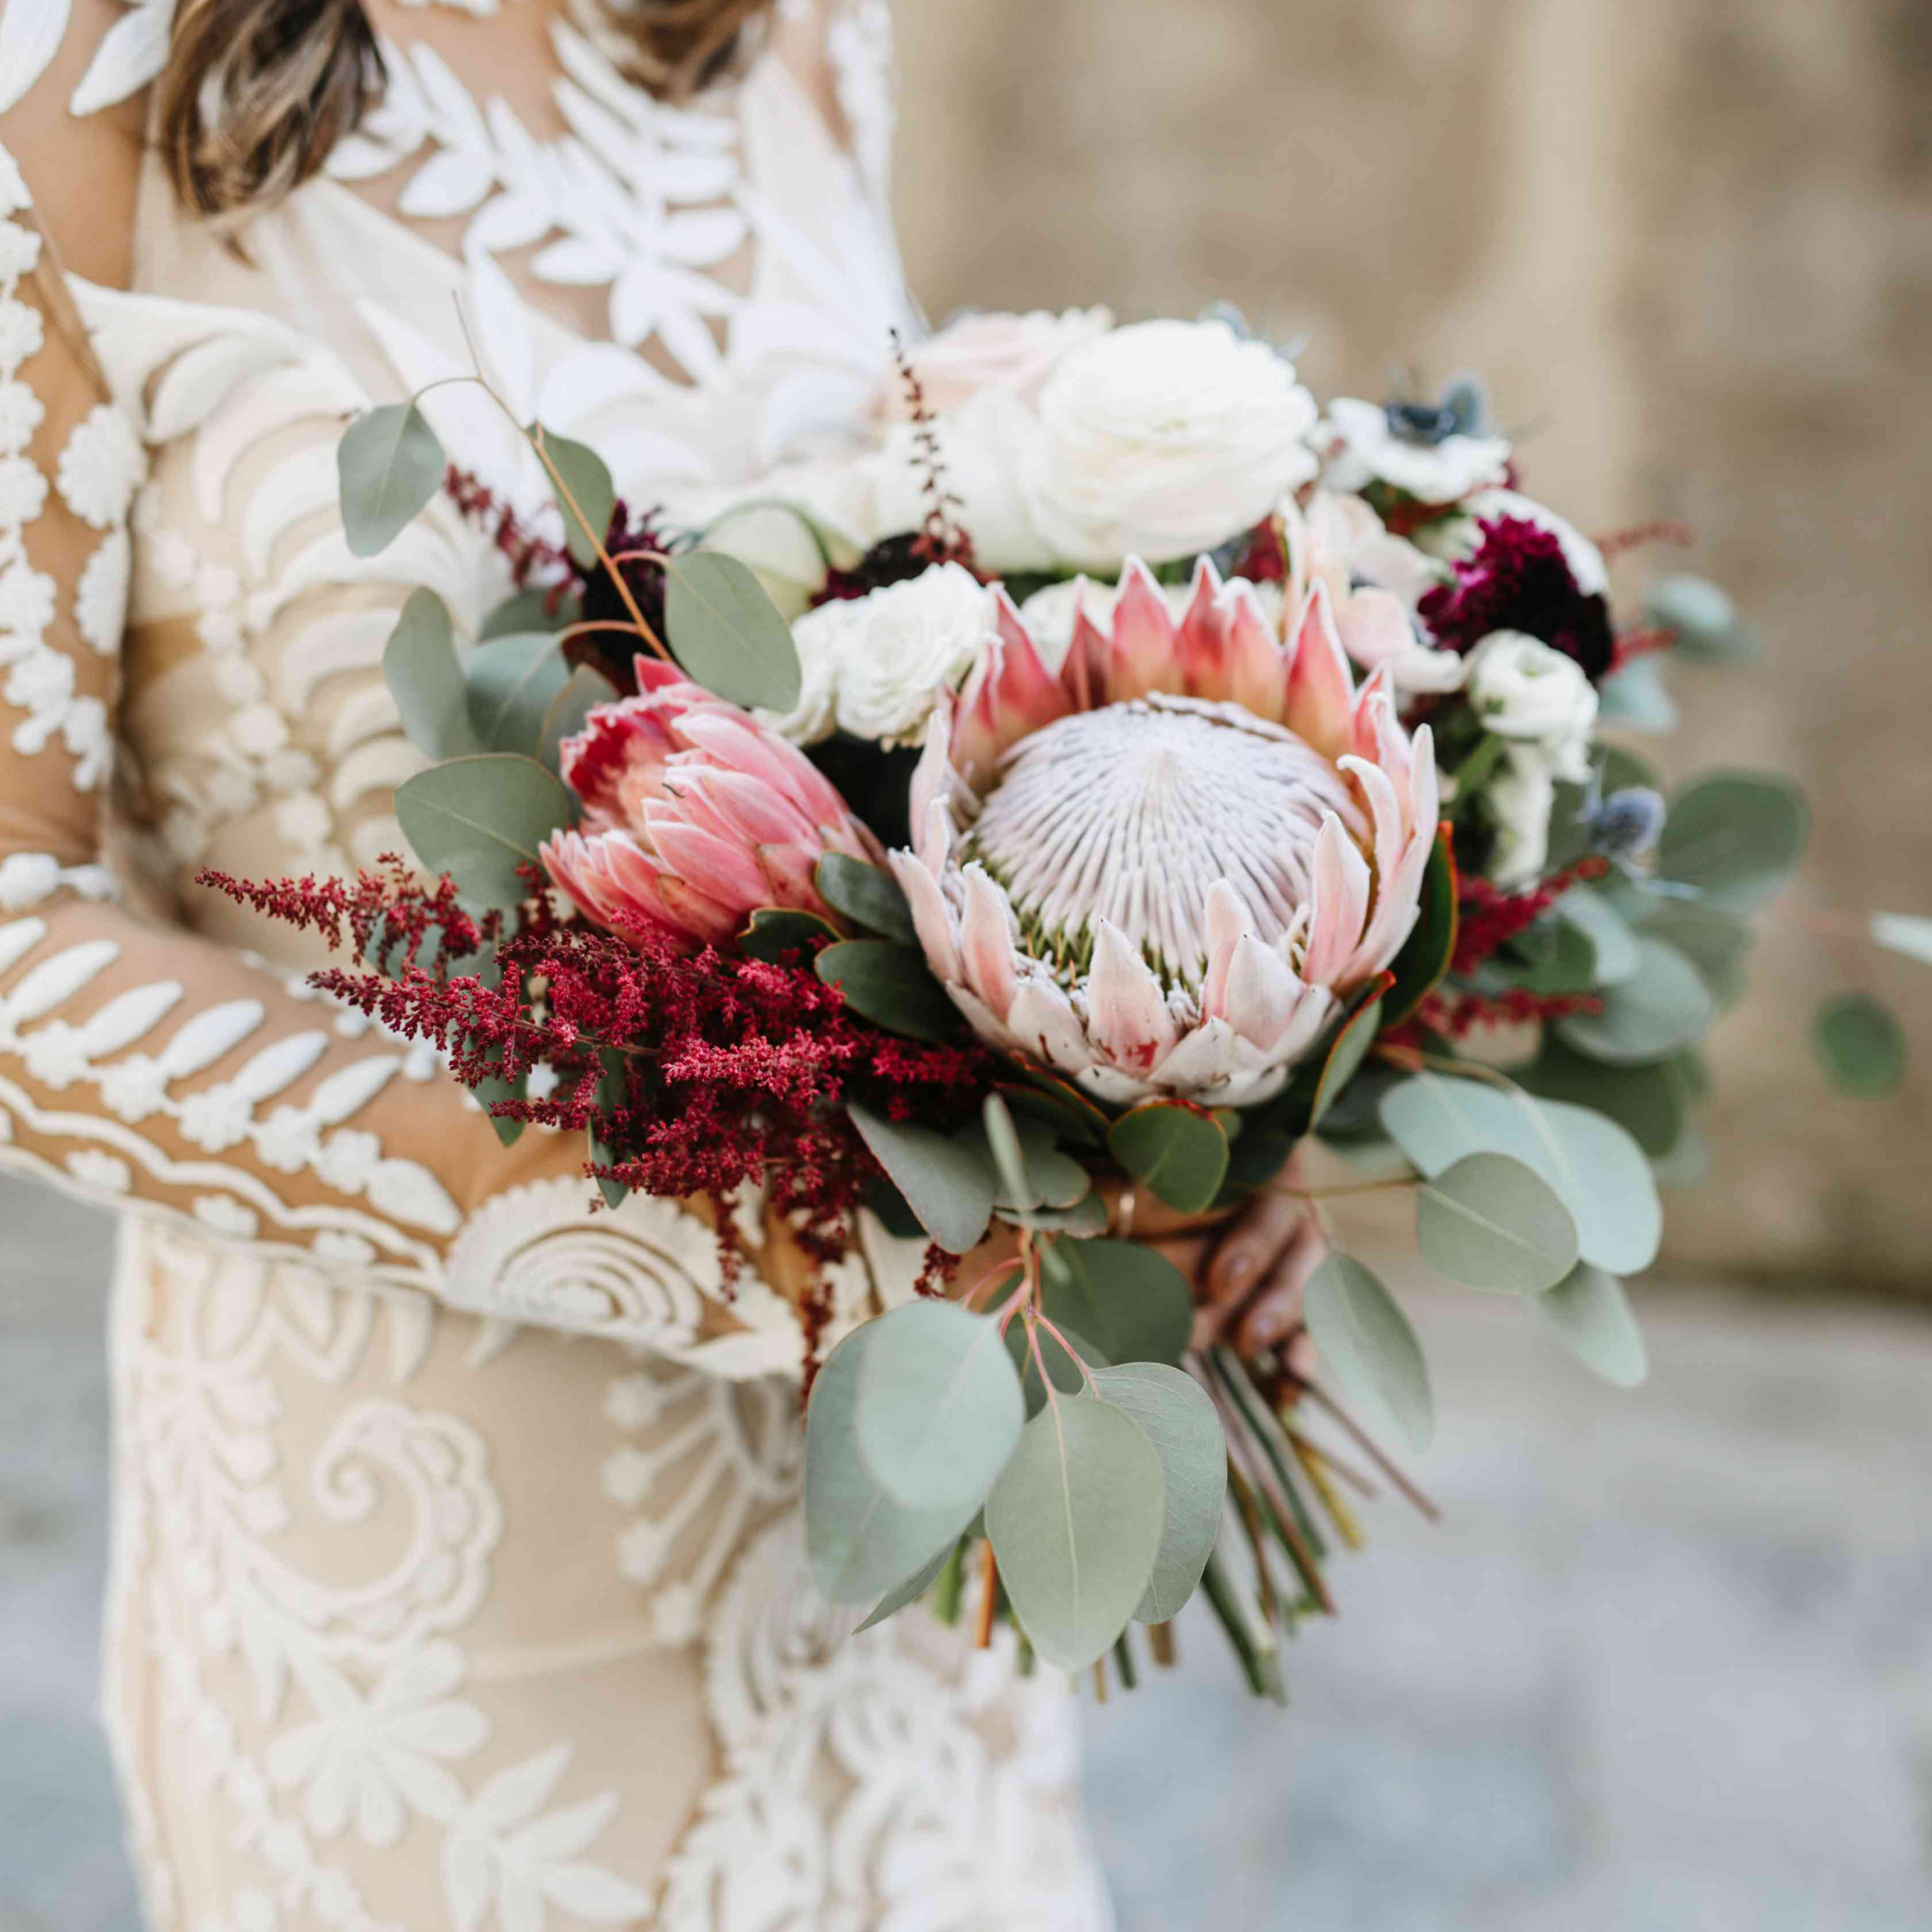 Bride's bouquet featuring King Protea front and center